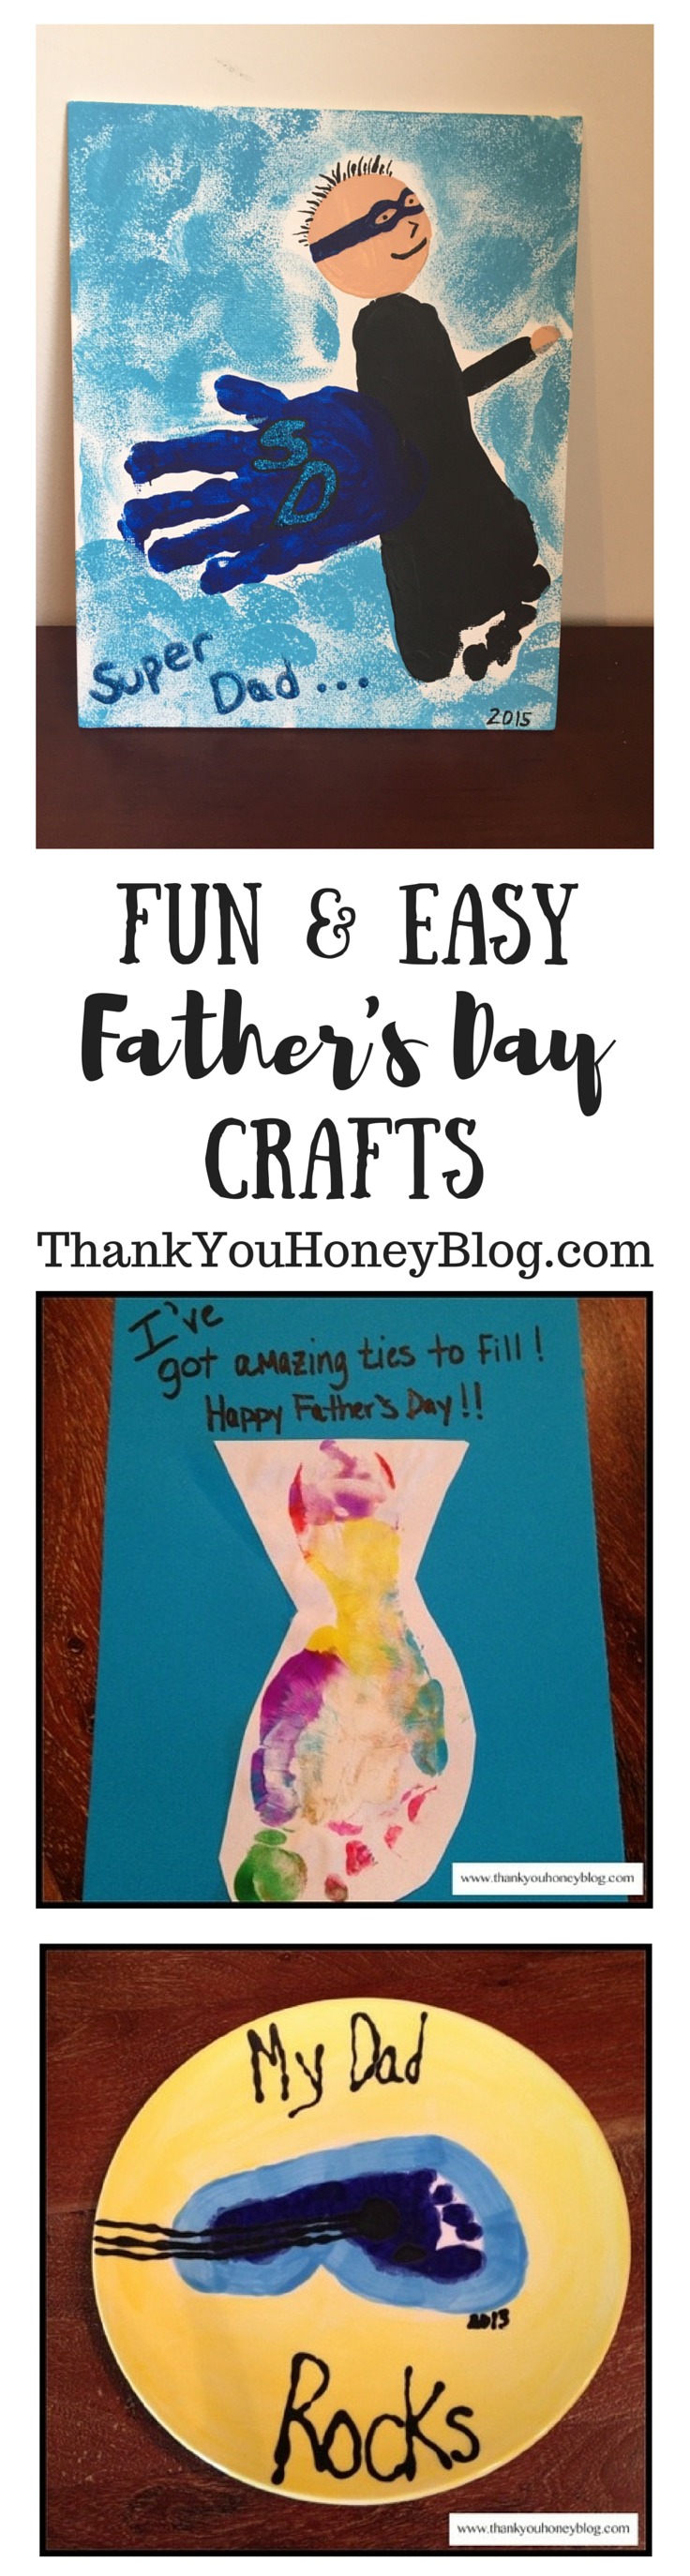 Fun & Easy Father's Day Crafts, Father's Day Gift Ideas, Crafts, DIY, Gifts from Kids, Homemade, Cards, Handmade, Made with Love, http://thankyouhoneyblog.com